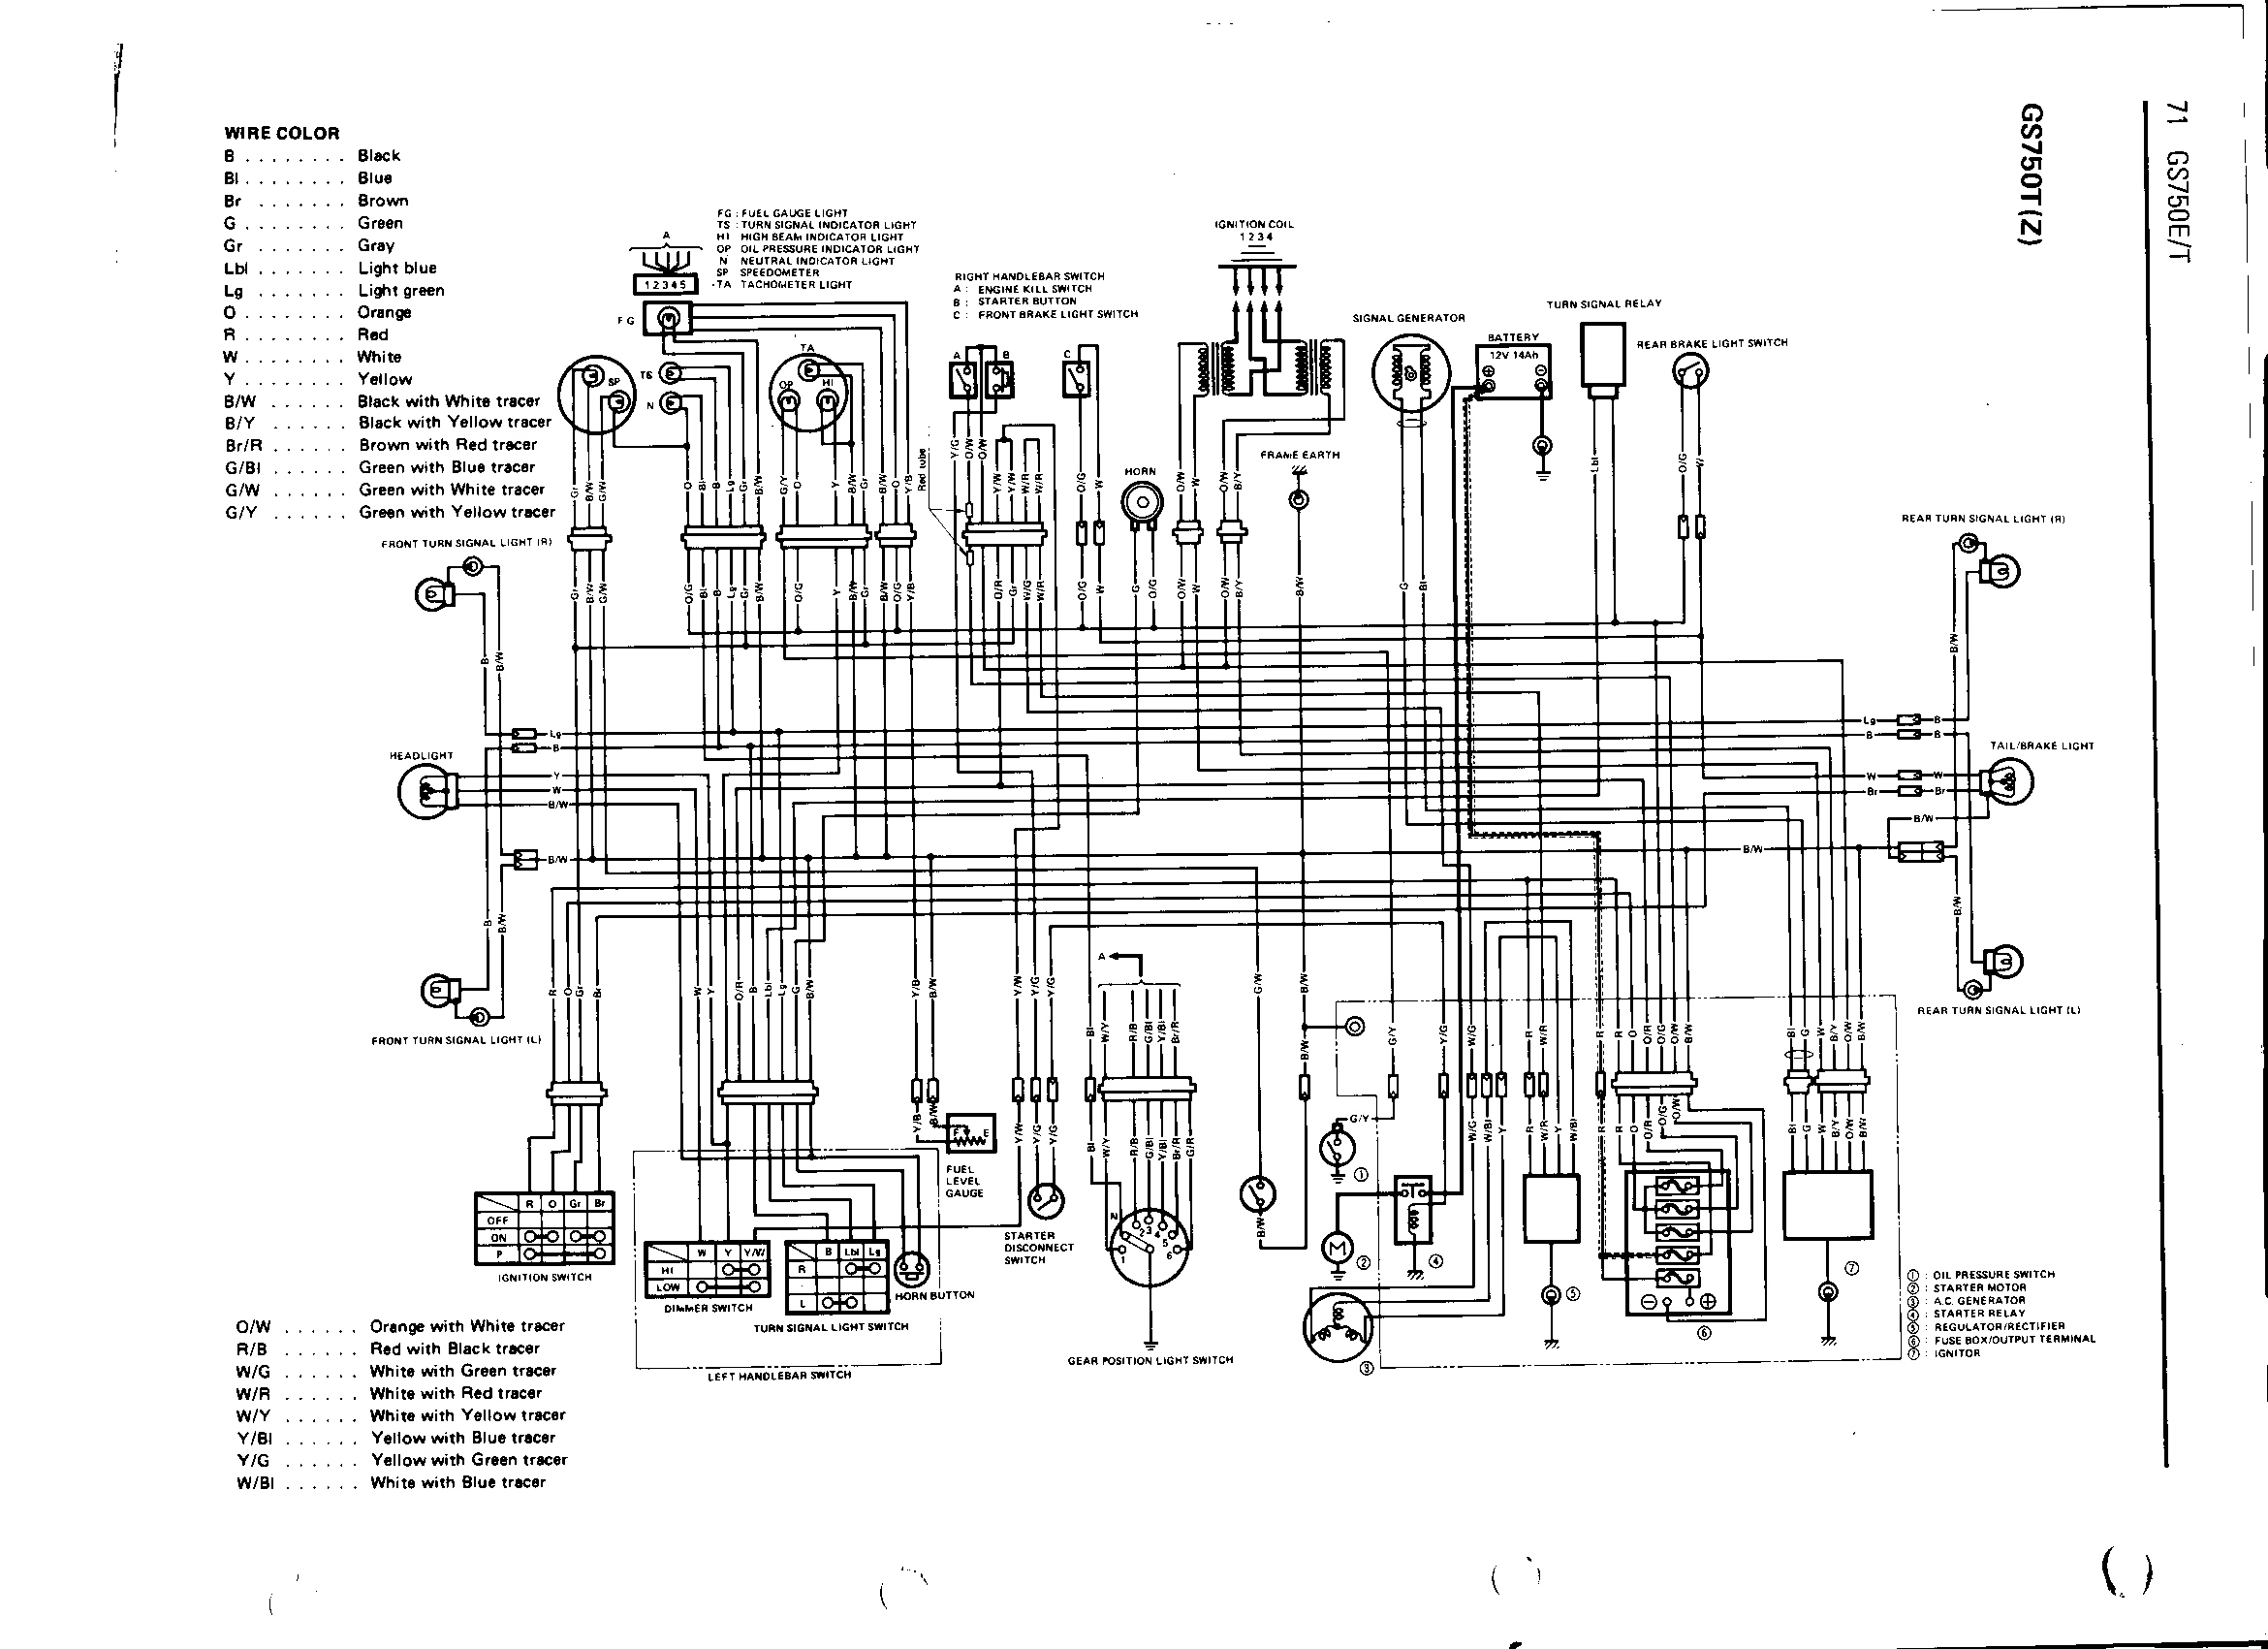 1978 suzuki gs400 wiring diagram